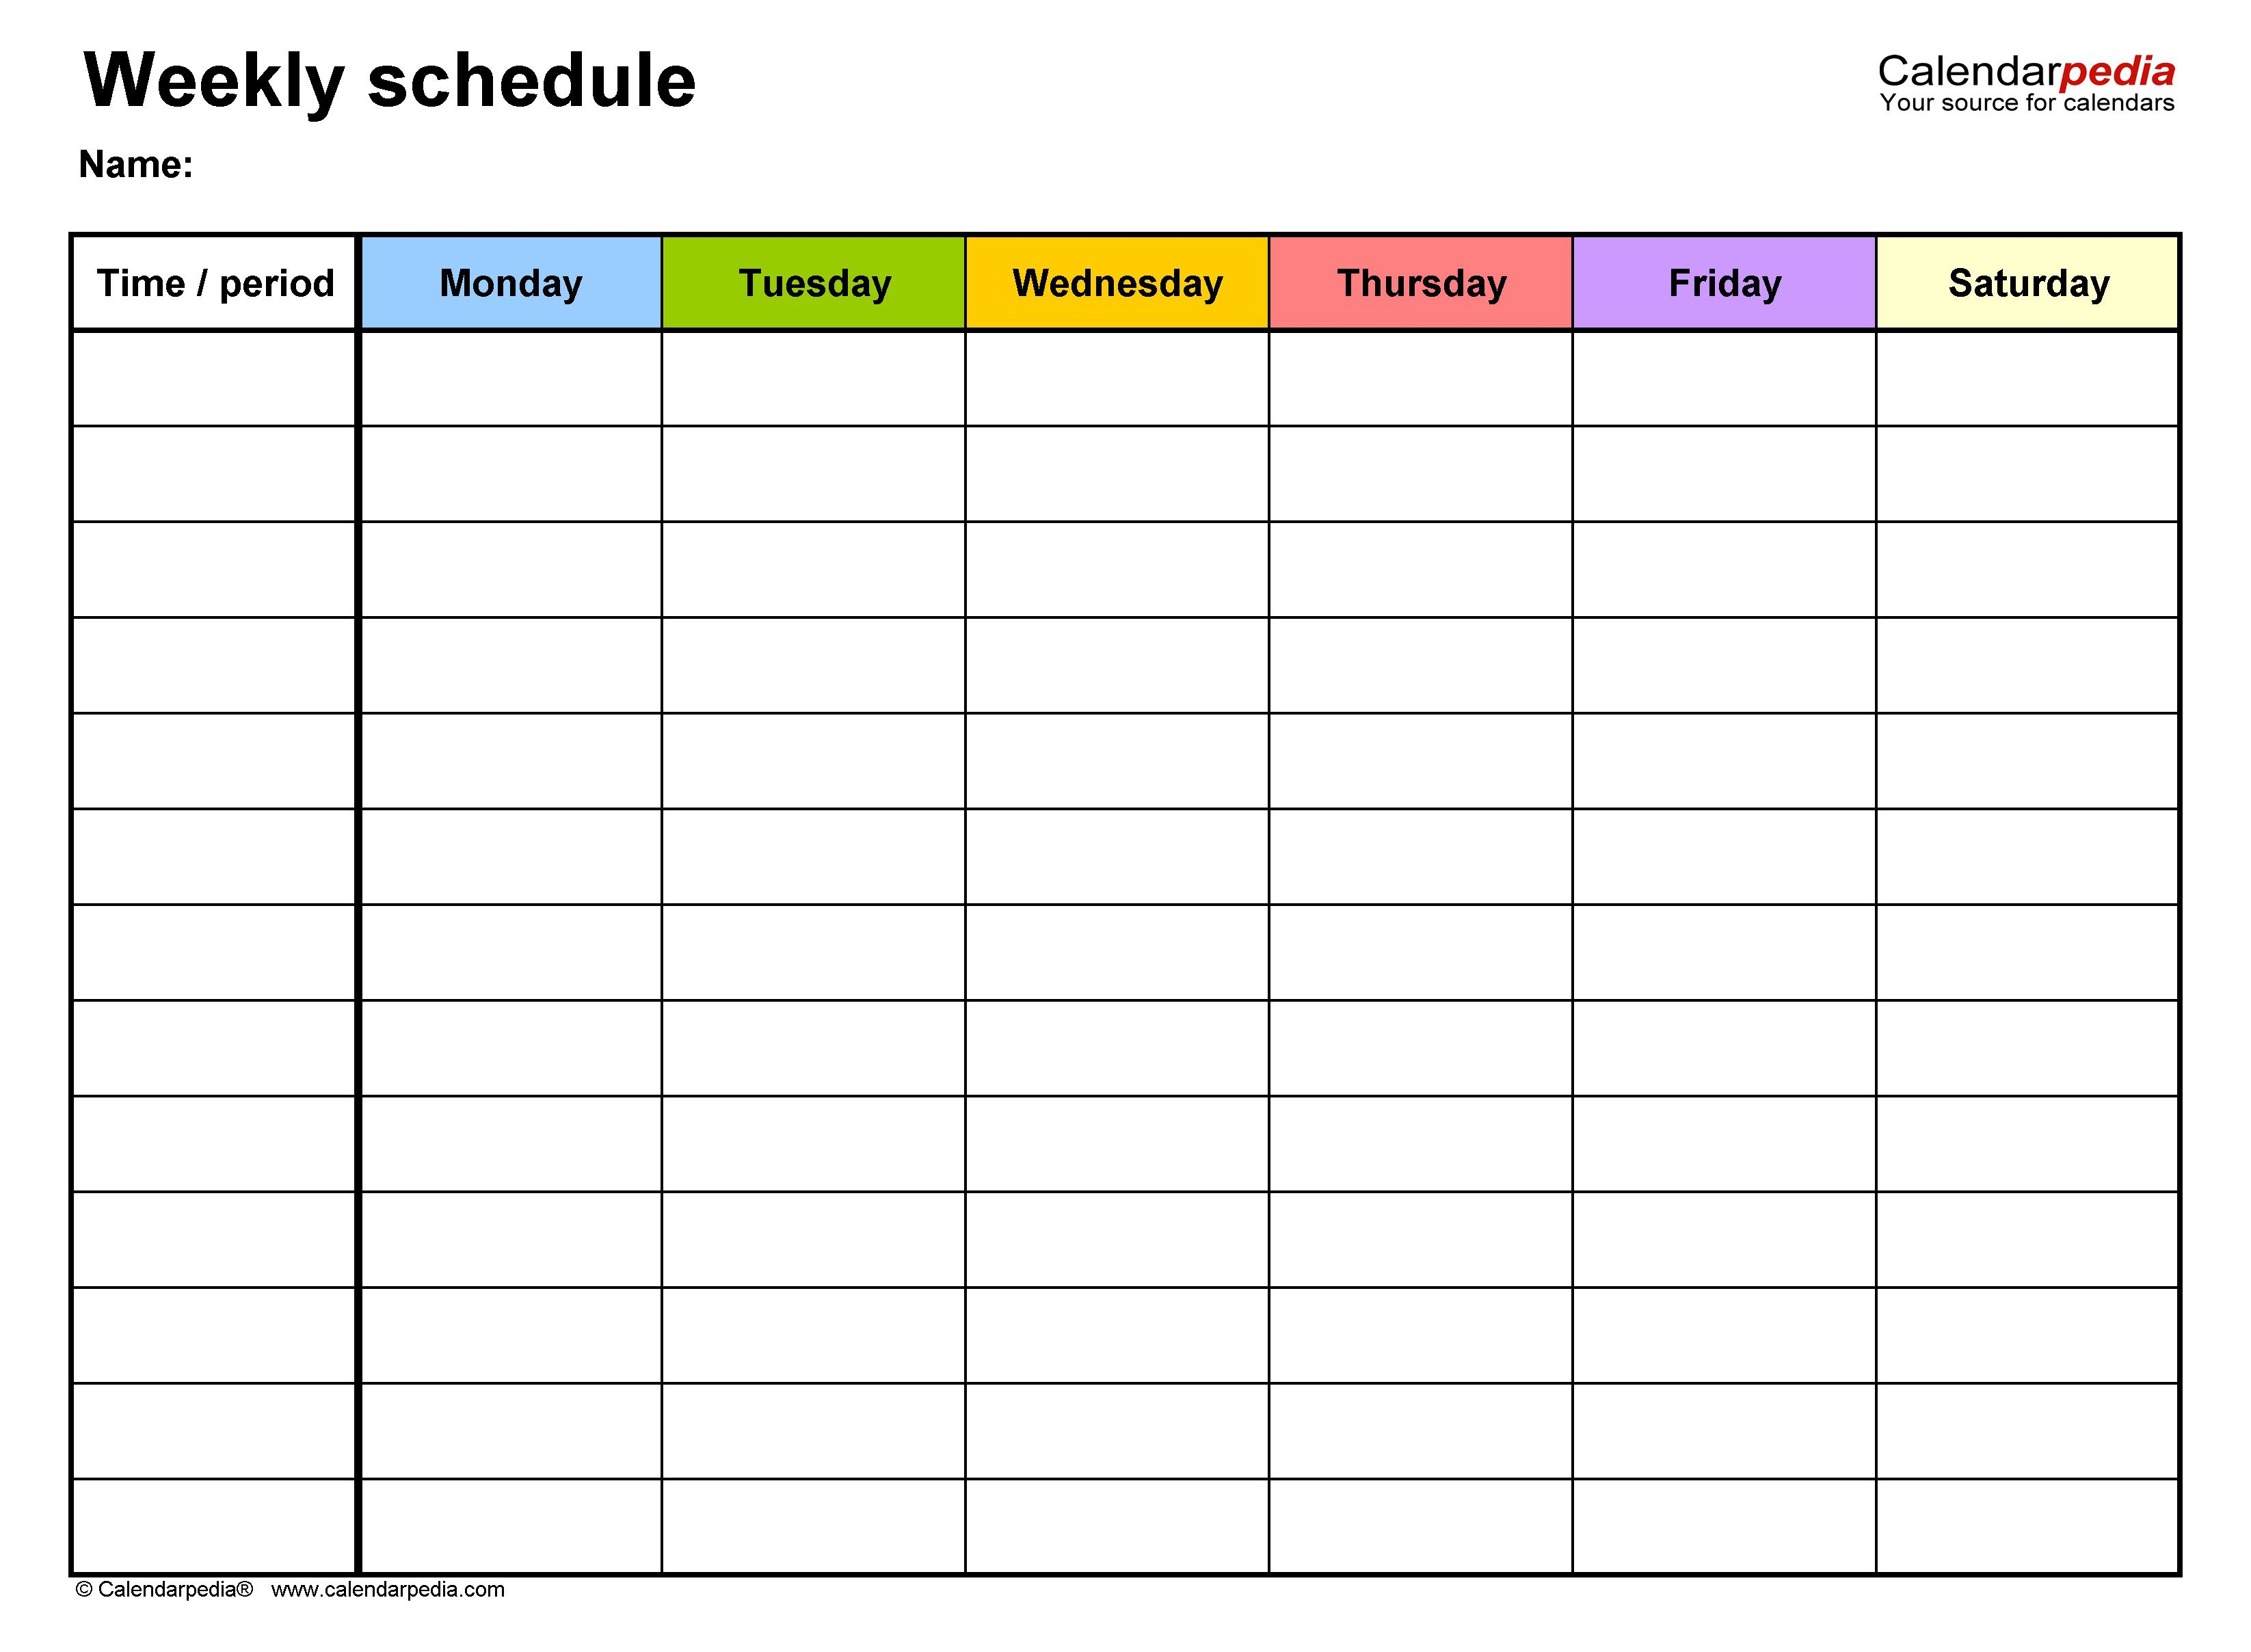 008 Amazing Microsoft Excel Schedule Template Image  Calendar 2019 Yearly 2020 ConstructionFull